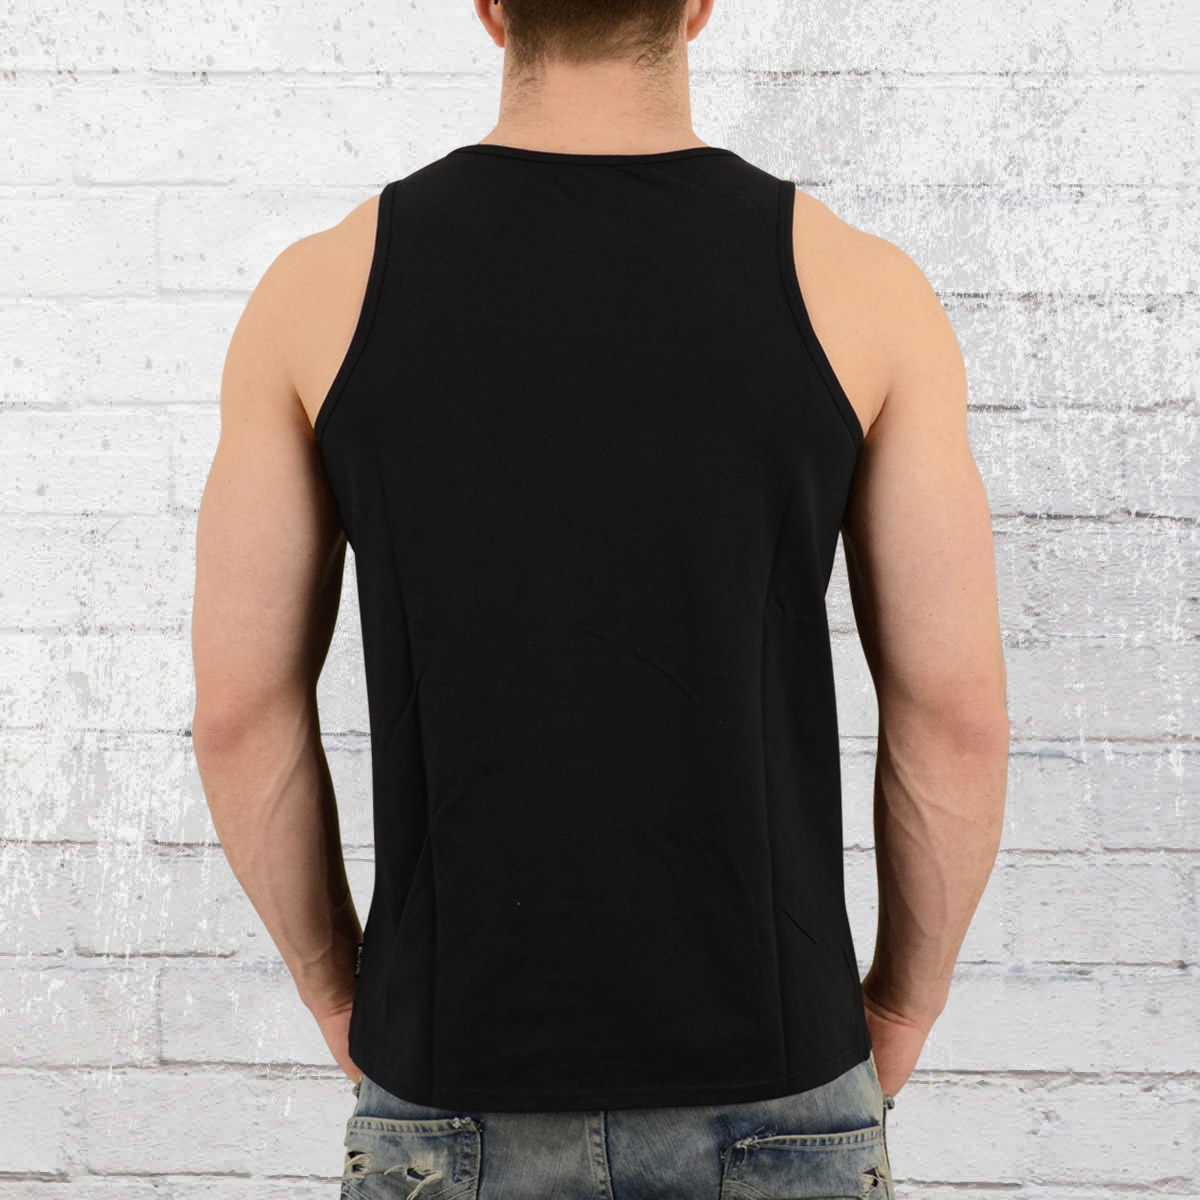 b41b31a87f93f Have you seen  Lonsdale London Mens Tank Top ...